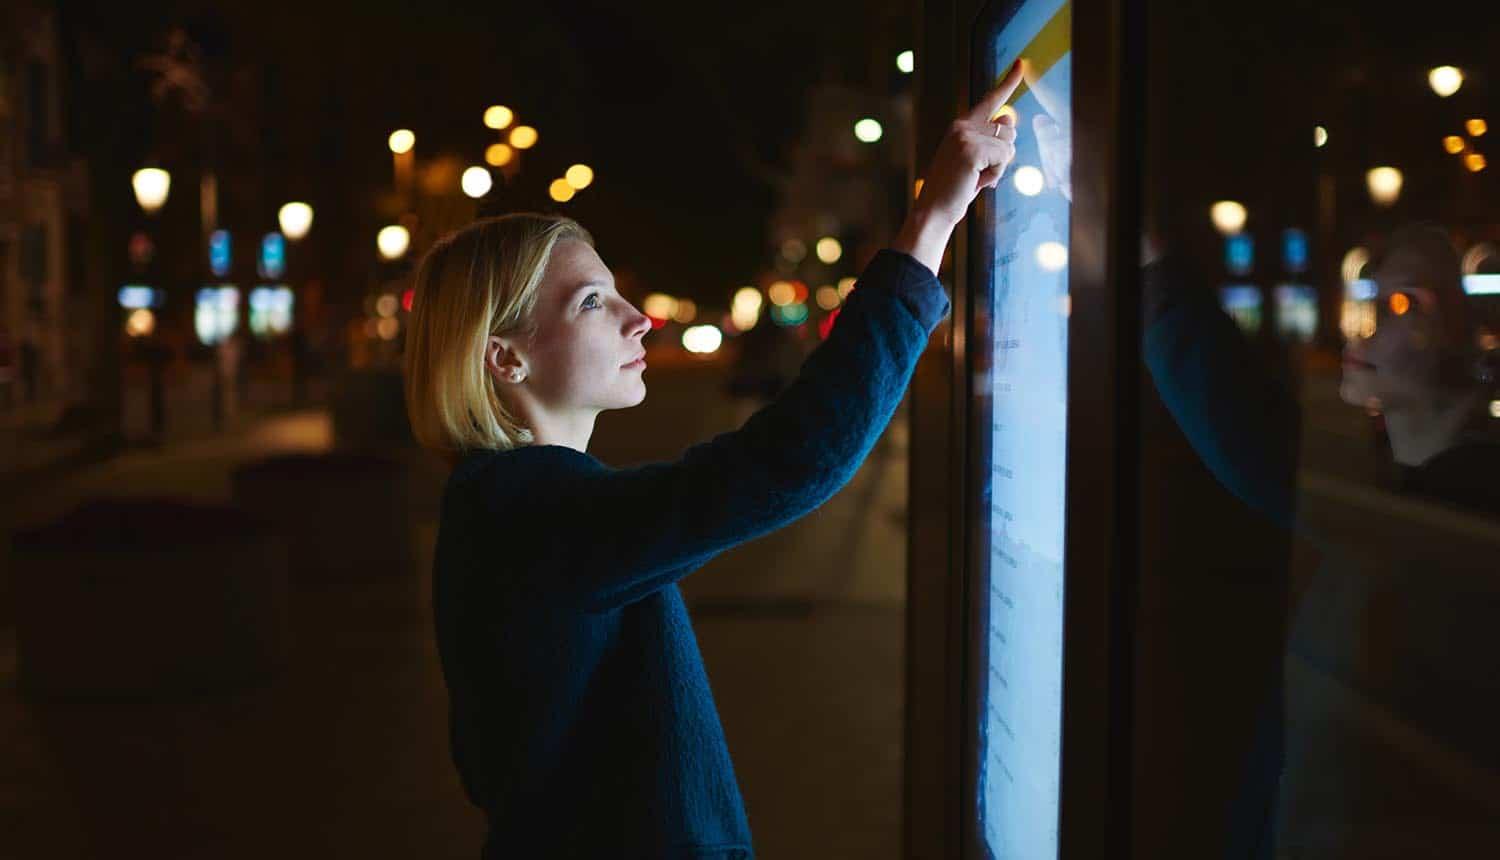 Image of woman using a giant screen in smart city representing the challenges faced by innovative enterprises in terms of big data privacy